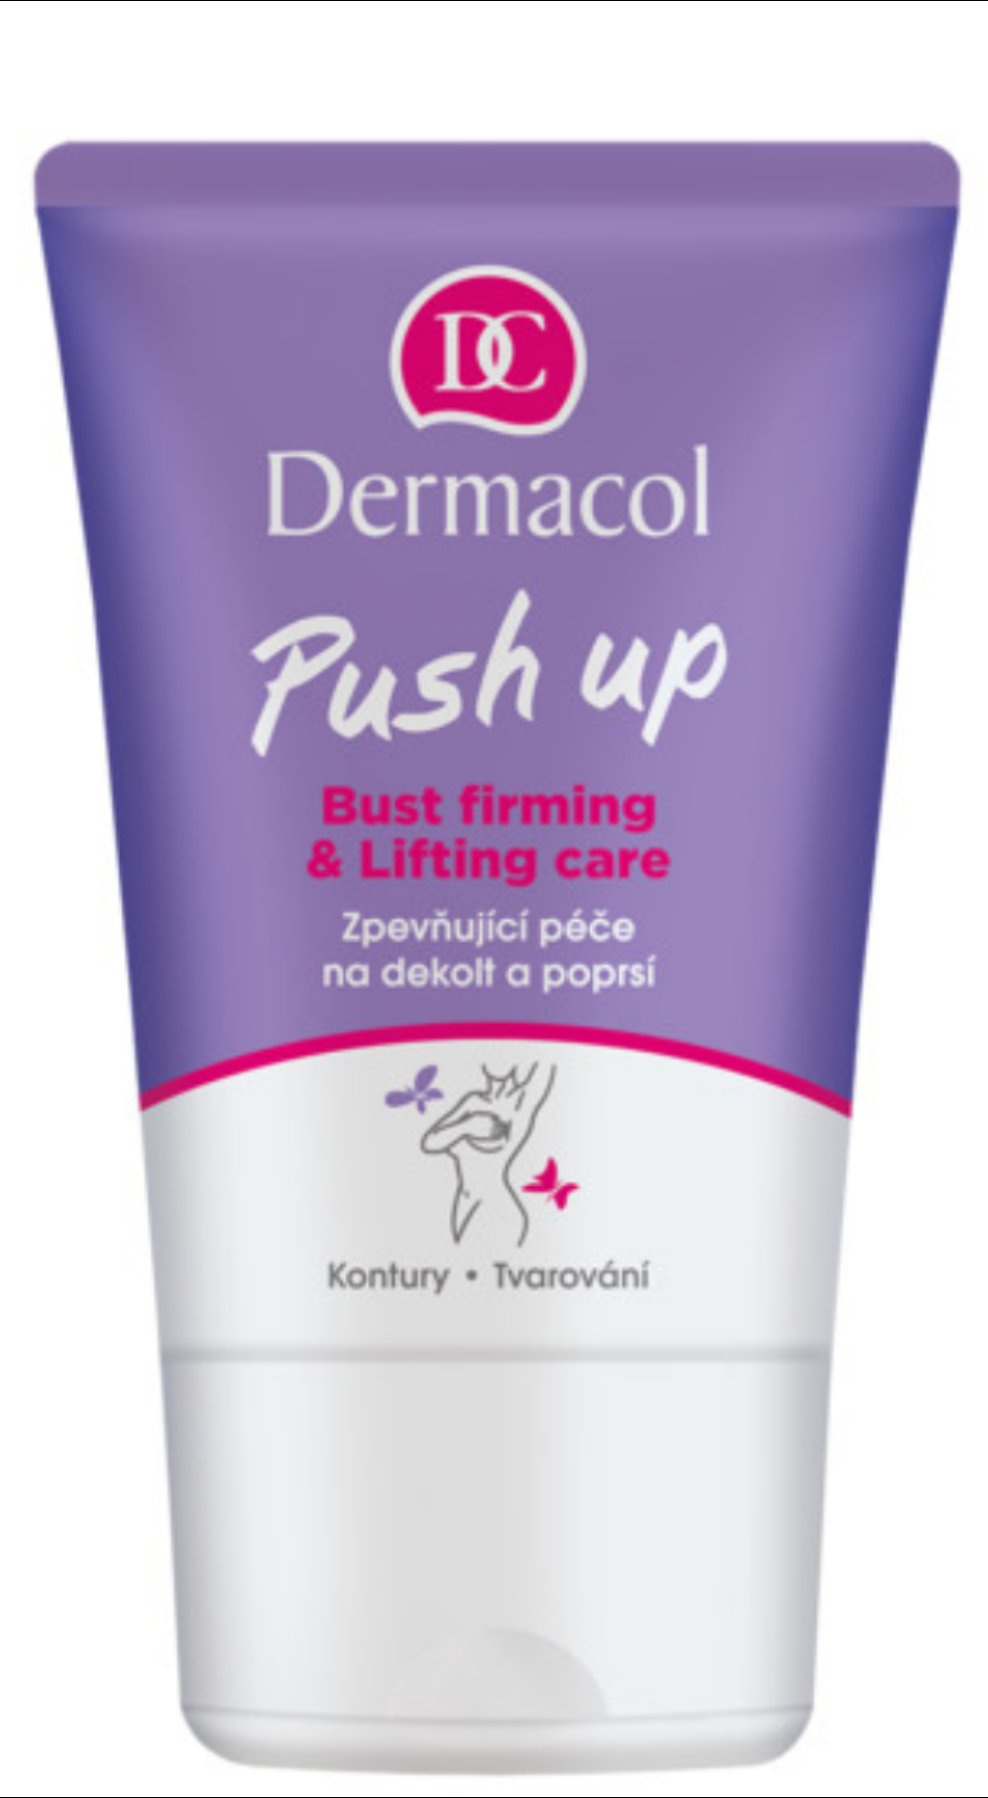 Dermacol Push Up (Bust Firming & Lifting Care)